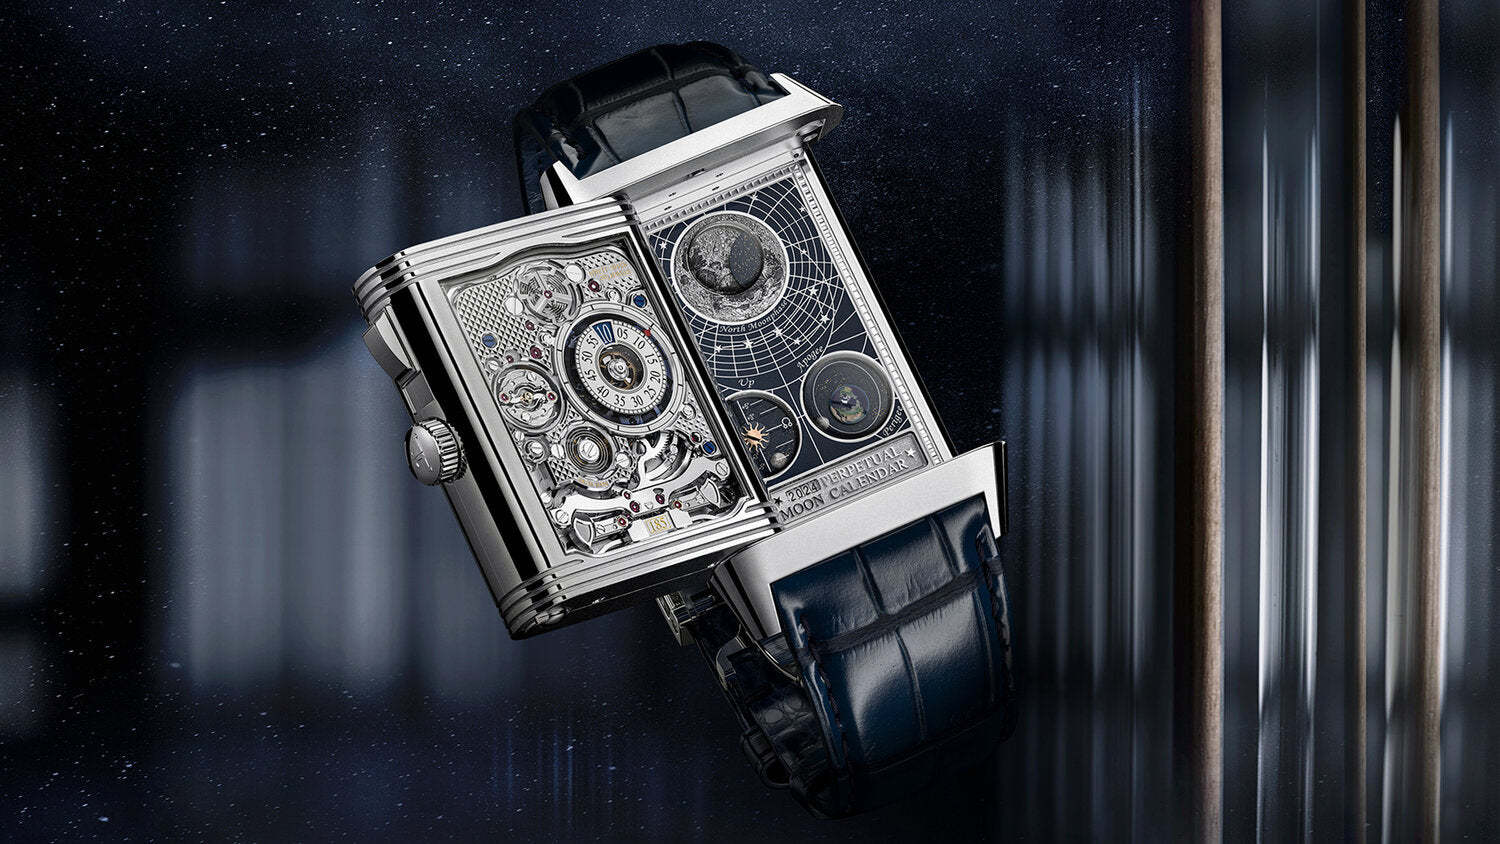 Jaeger-LeCoultre on BitDials